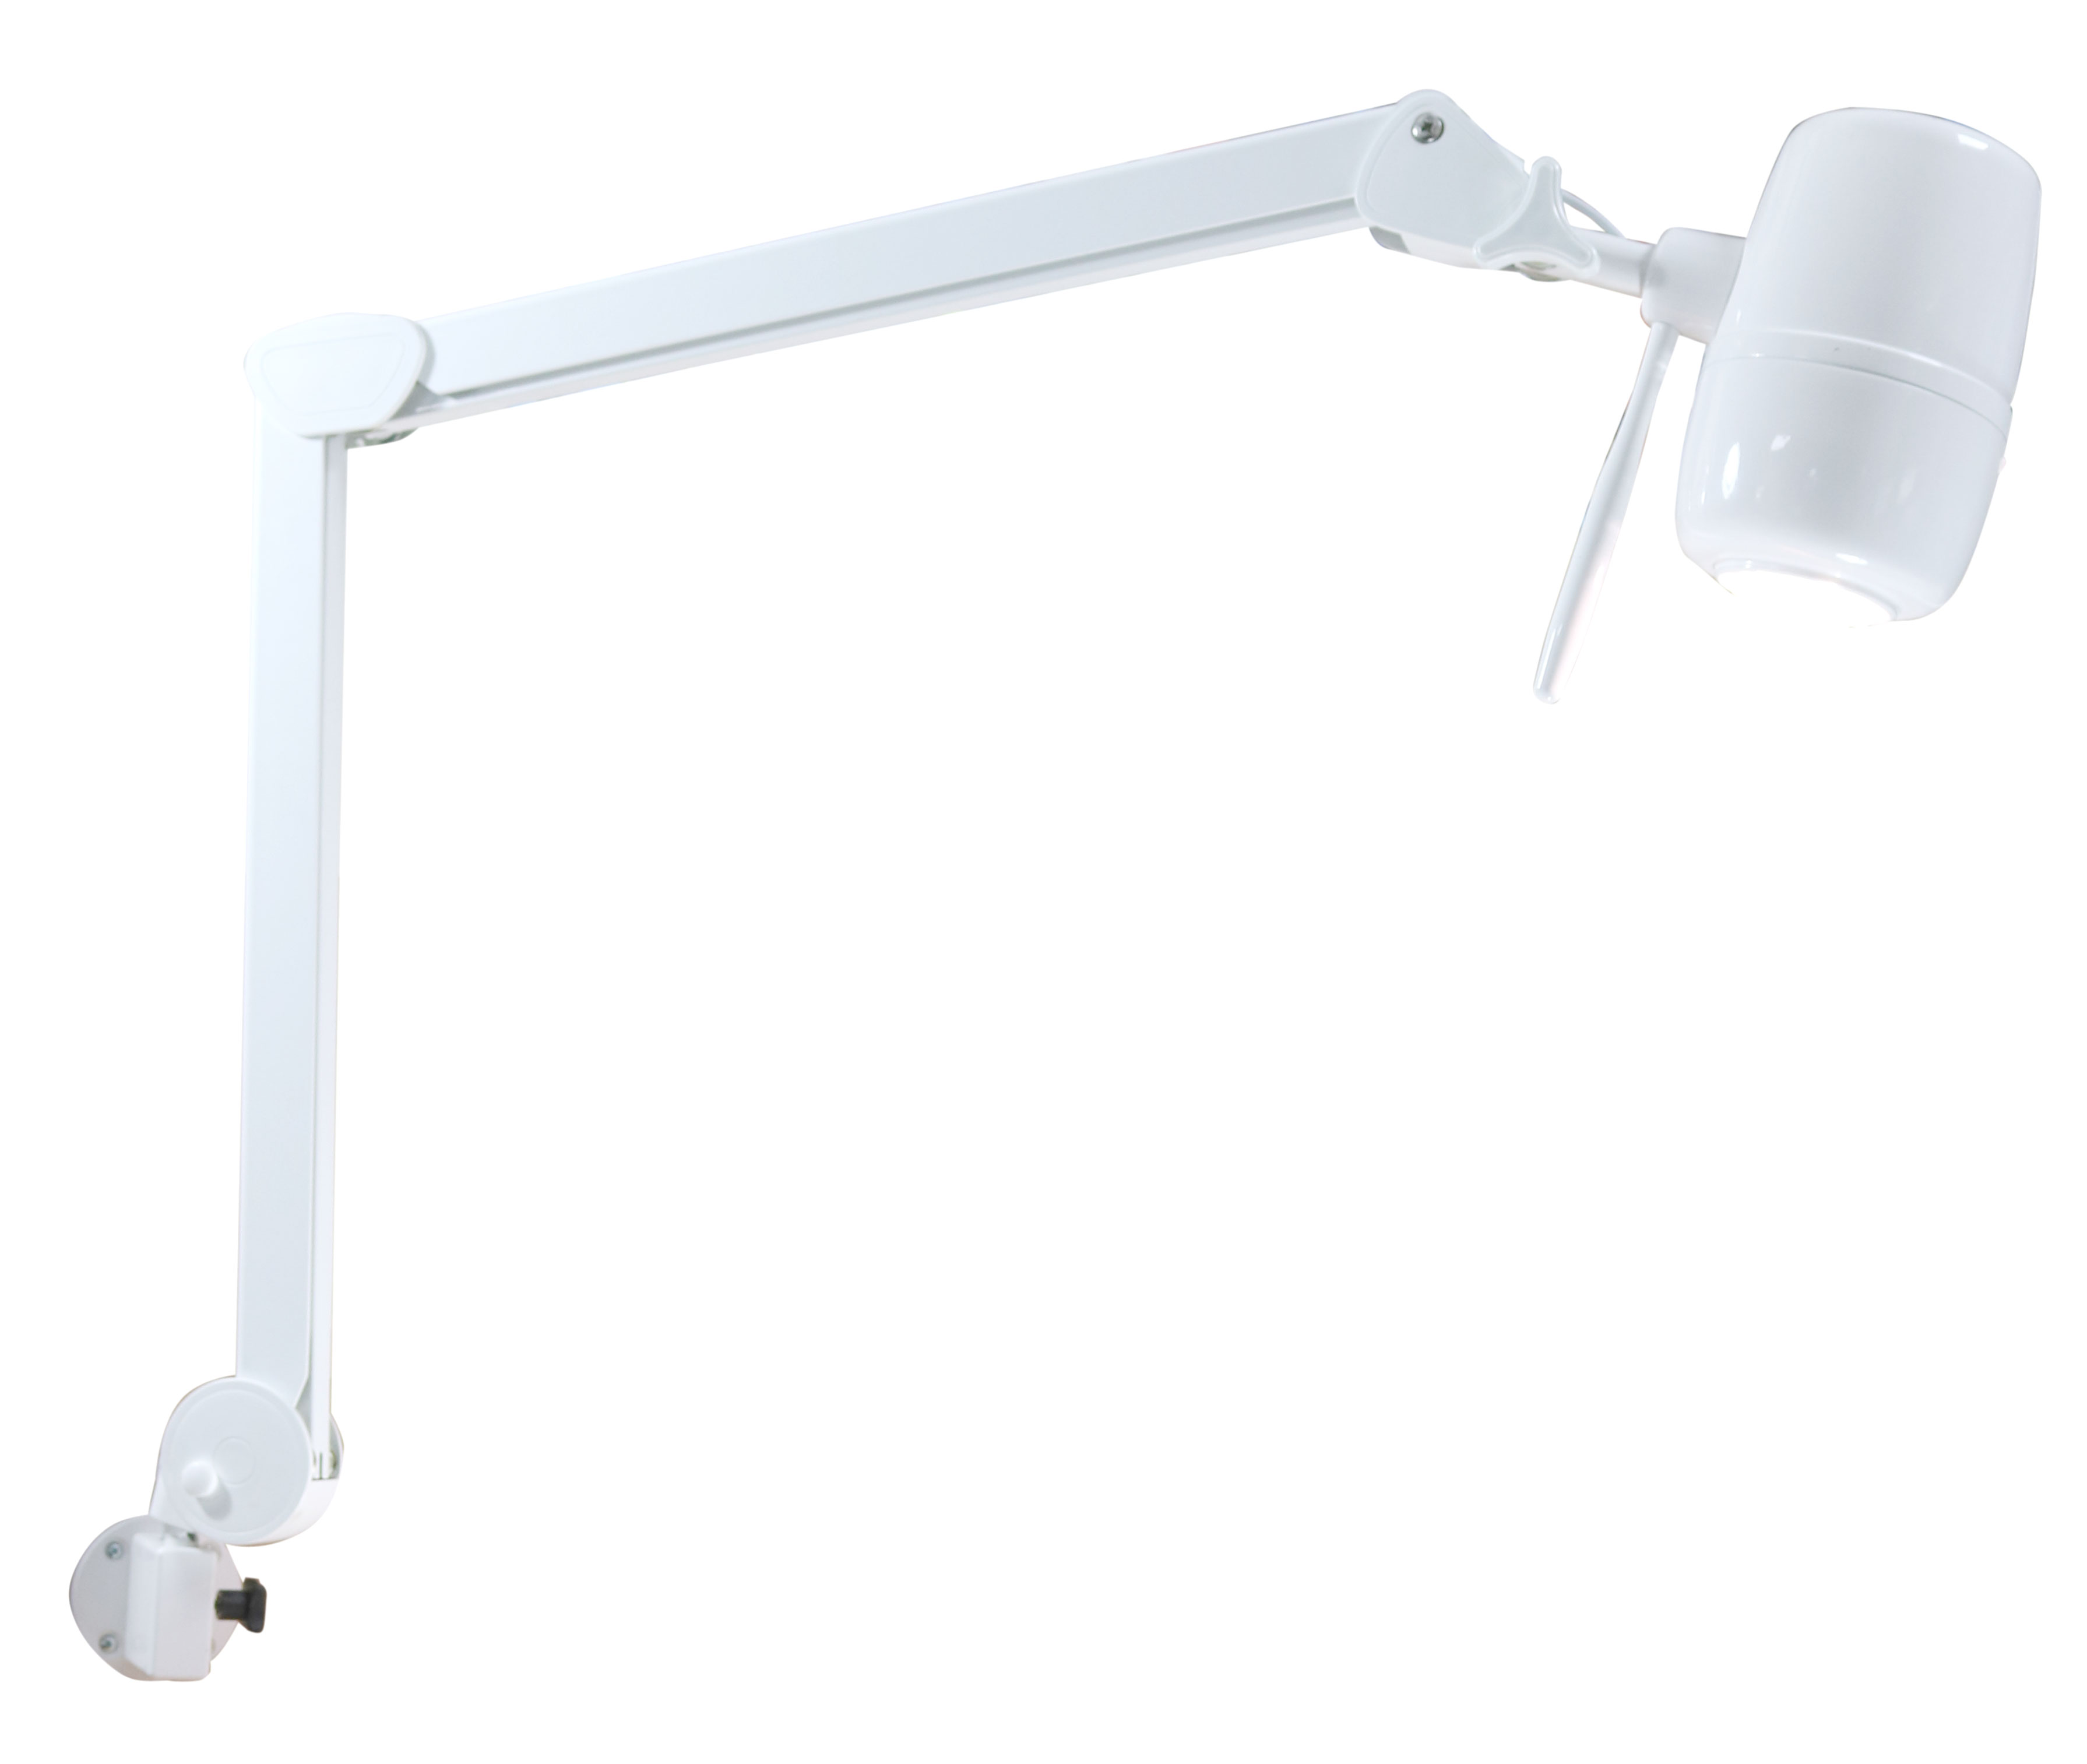 X240 LED Hardwired BESA Wall Mount Examination Light (special order)